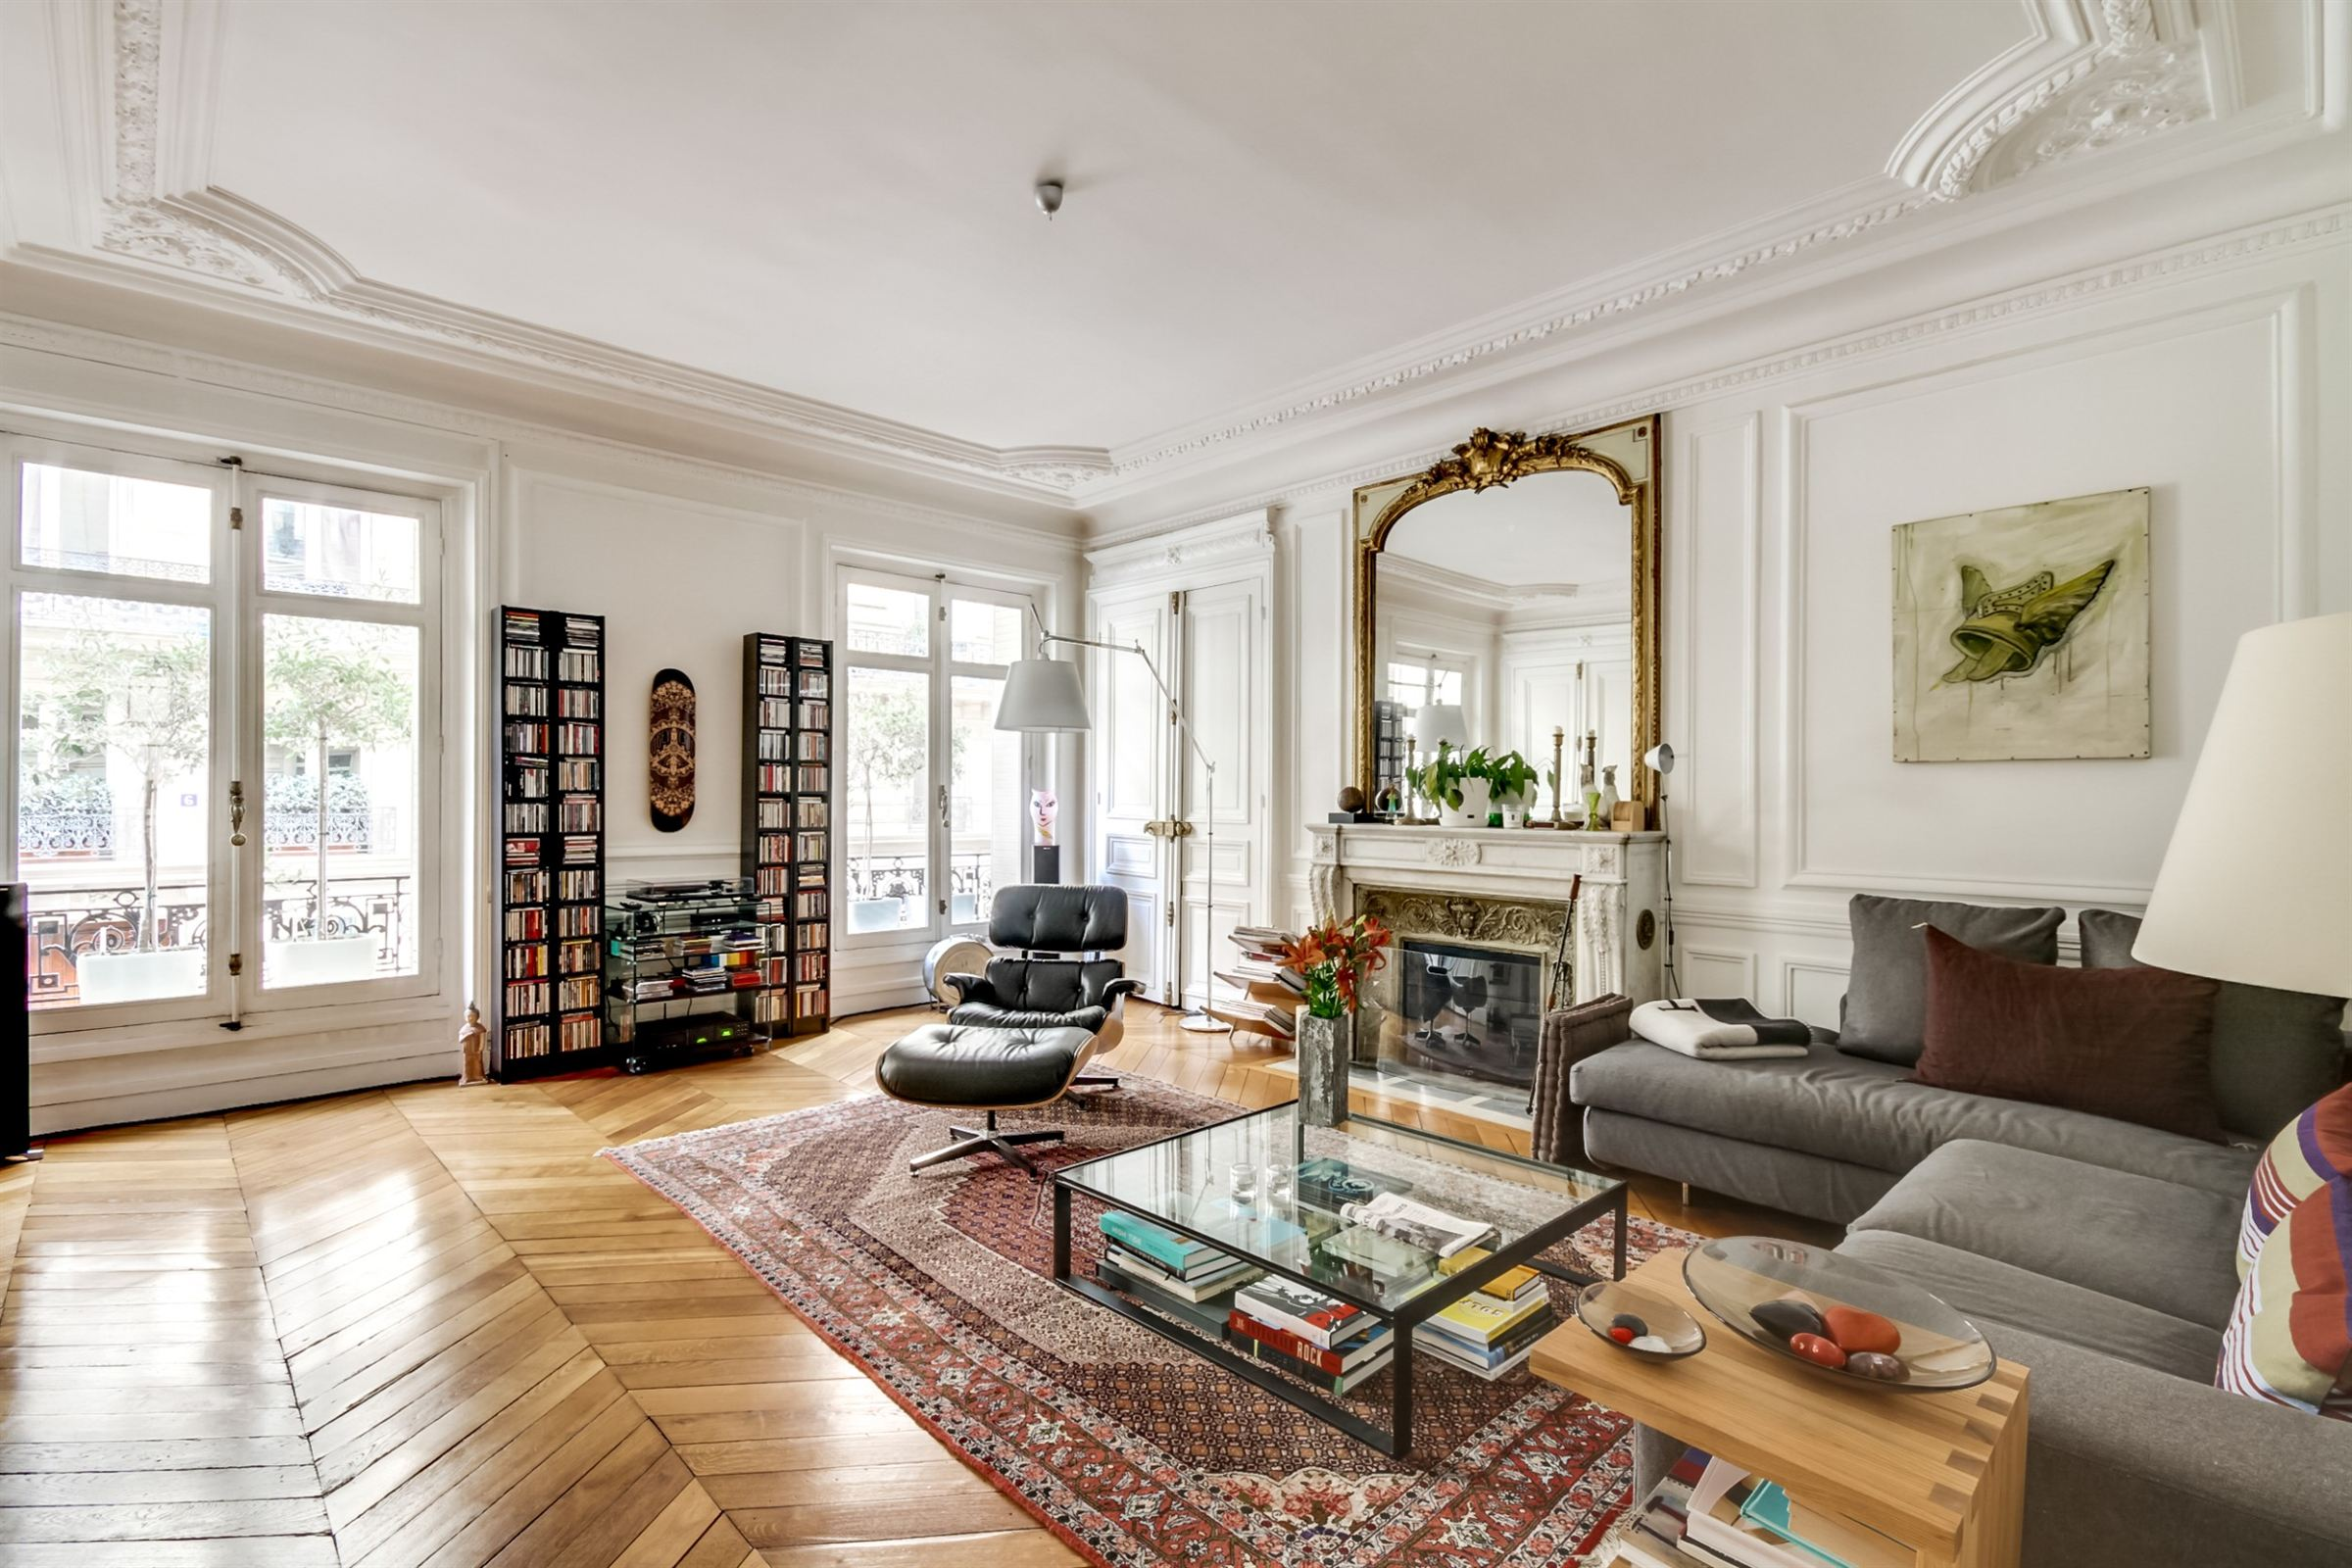 Apartamento por un Venta en Paris 17 - Courcelles. An elegant 170 sq.m apartment Paris, Paris 75017 Francia